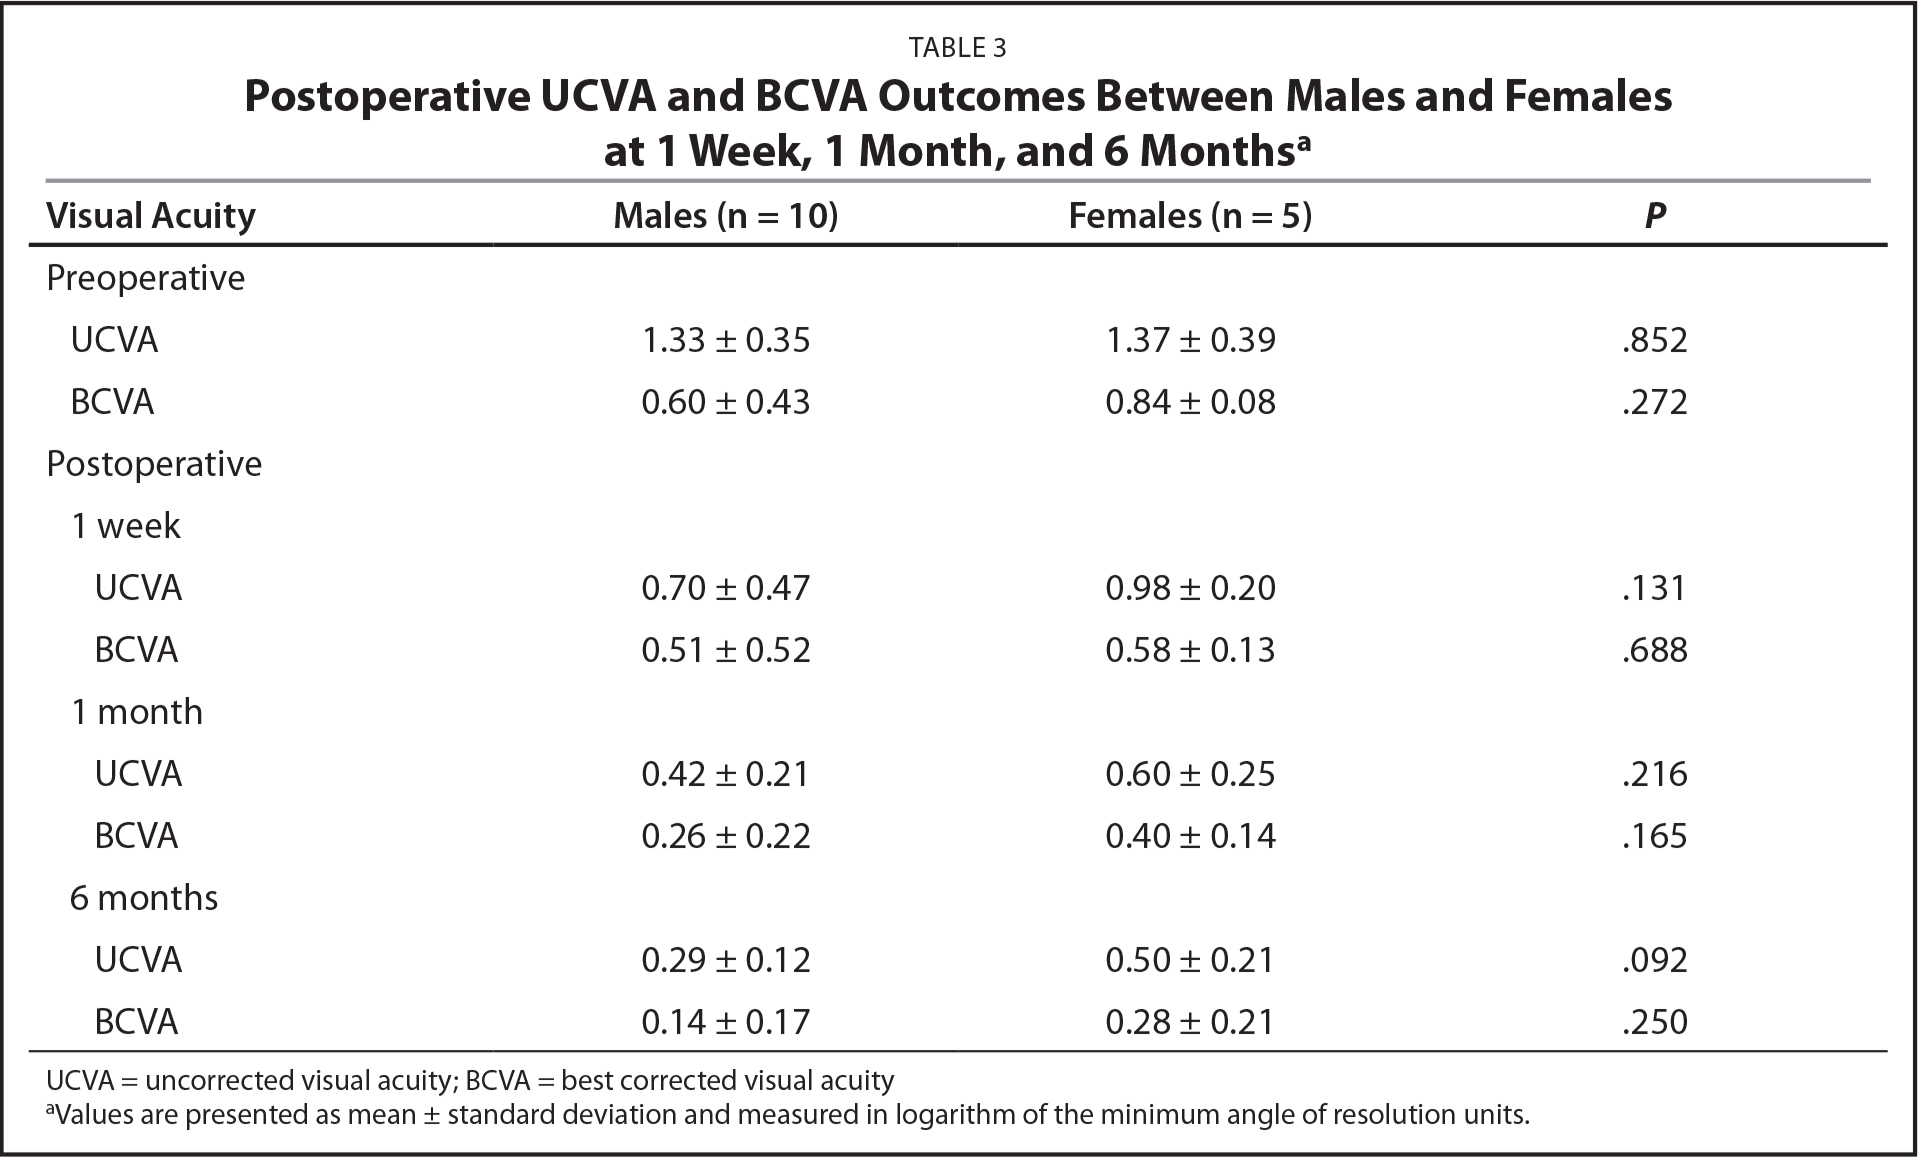 Postoperative UCVA and BCVA Outcomes Between Males and Femalesat 1 Week, 1 Month, and 6 Monthsa